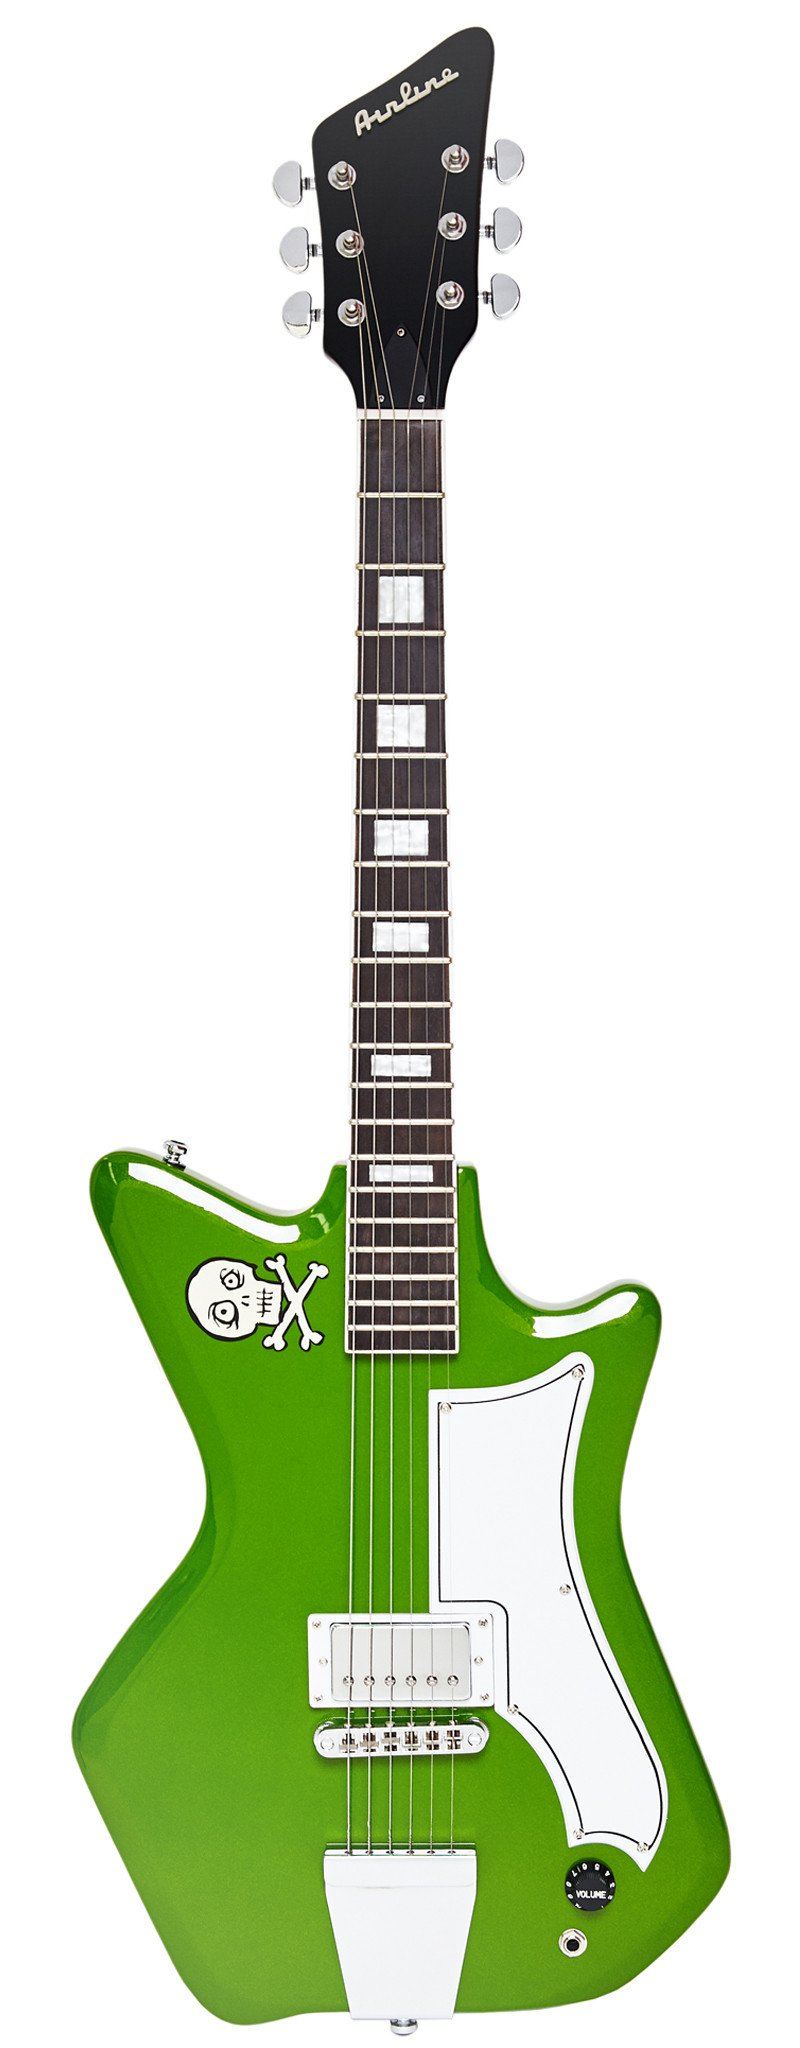 Eastwood Guitars Airline Jetsons Jr Ghoulie Green Full Front